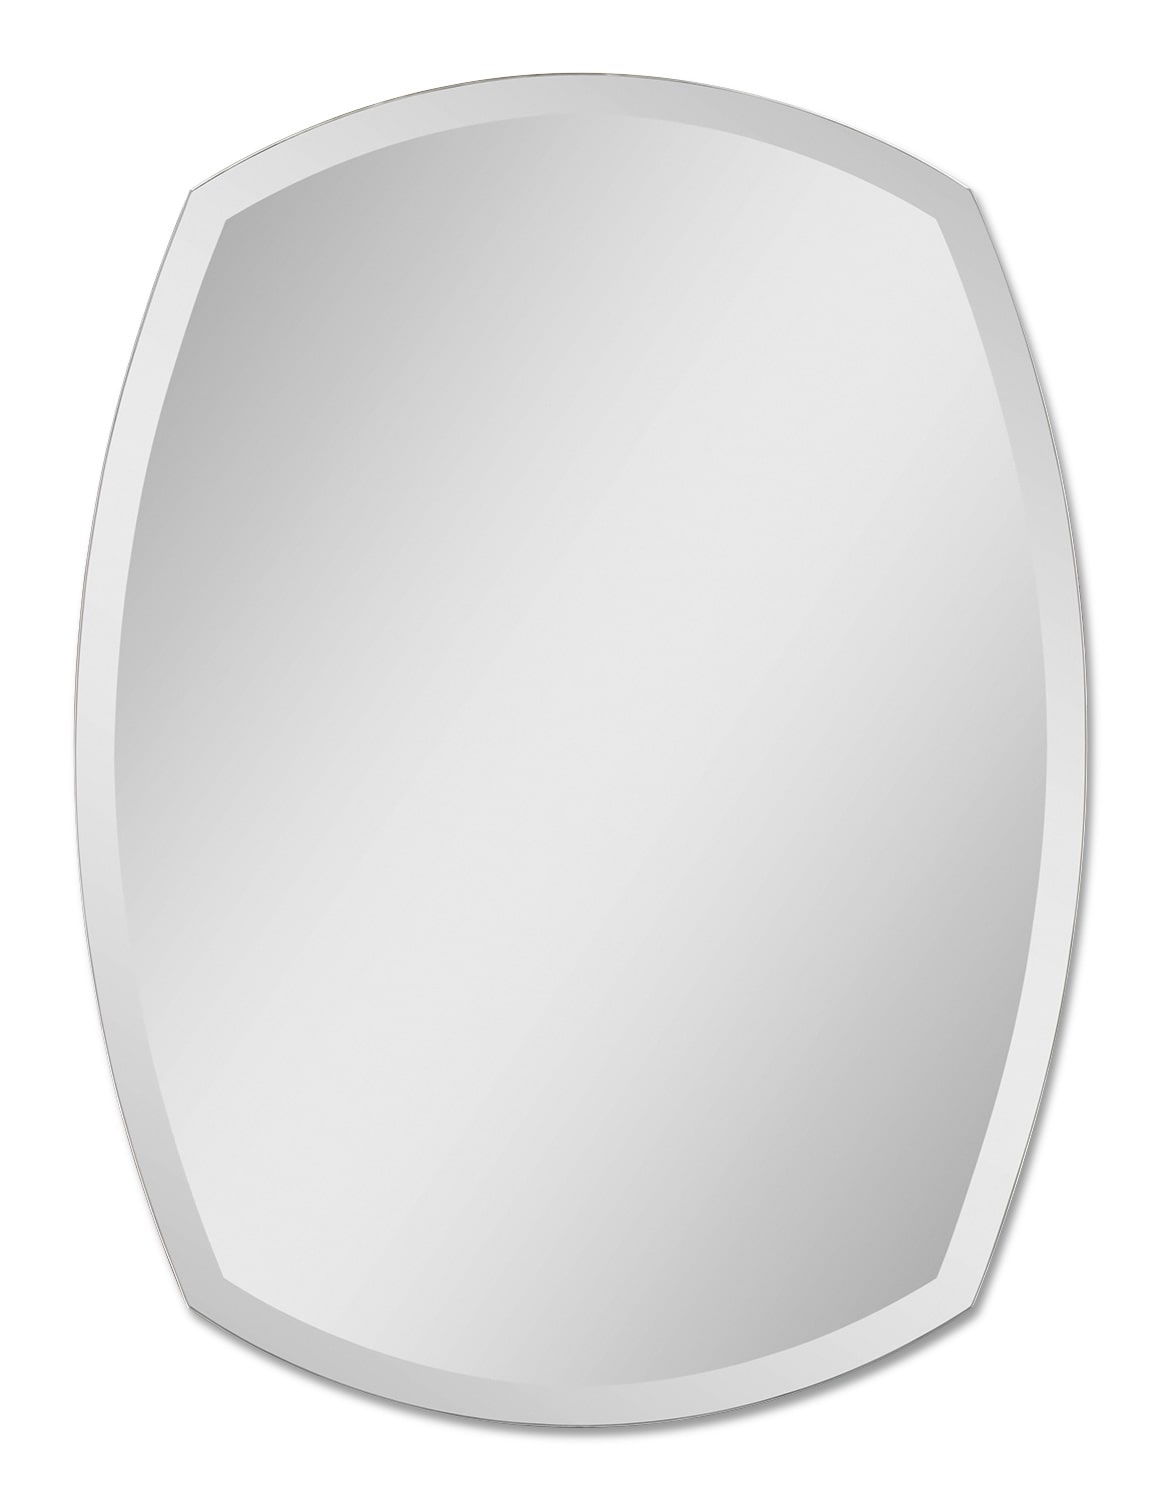 Home Accessories - Spalding Mirror